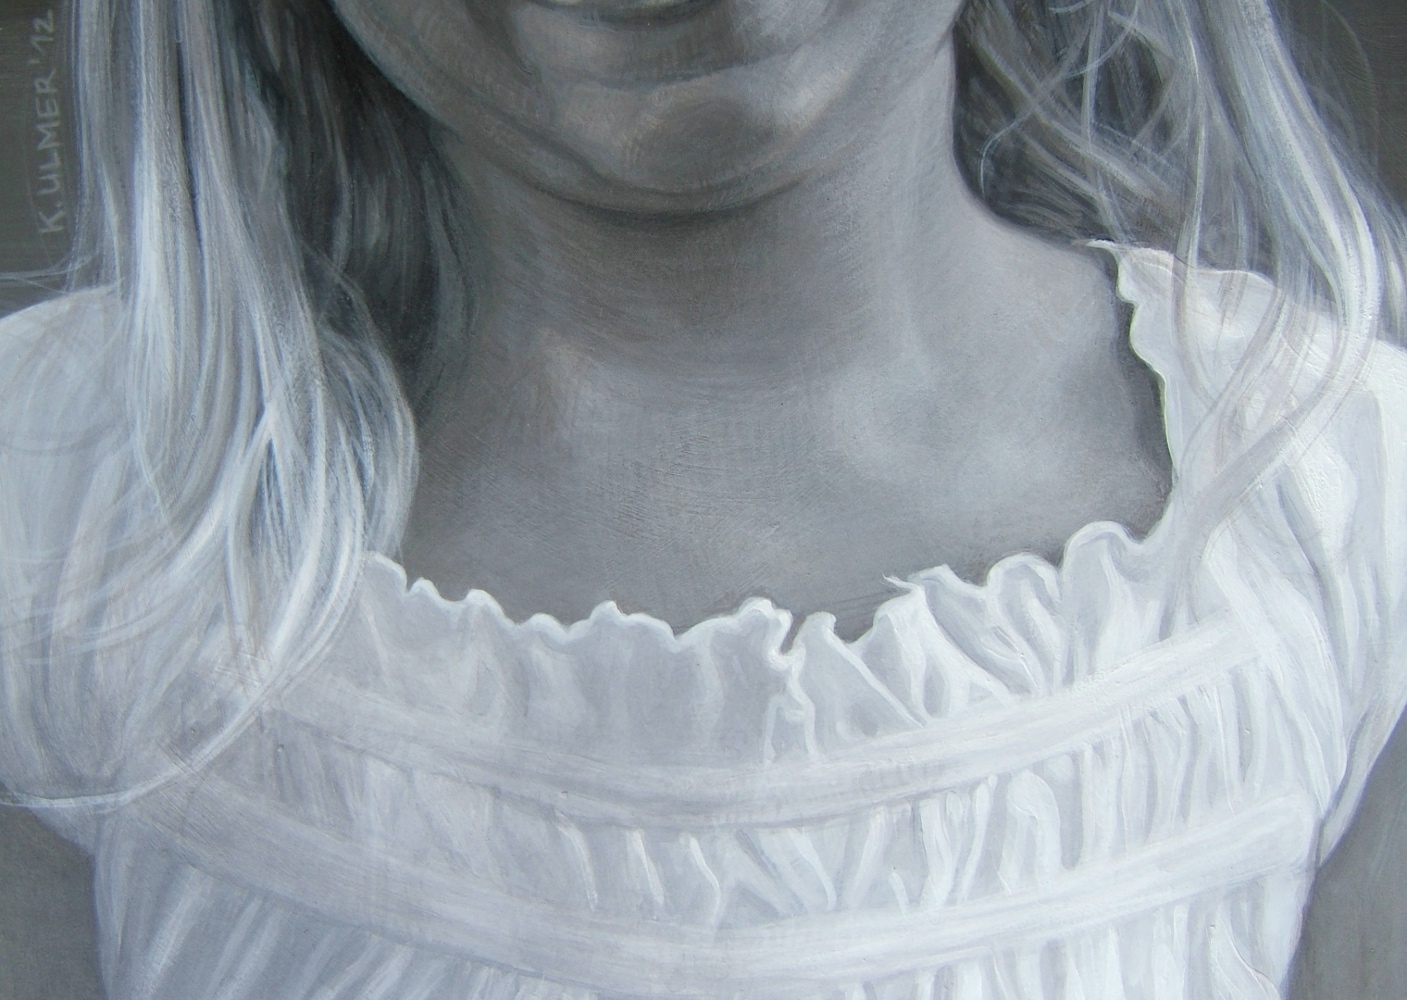 Marie - detail: neck and skirt